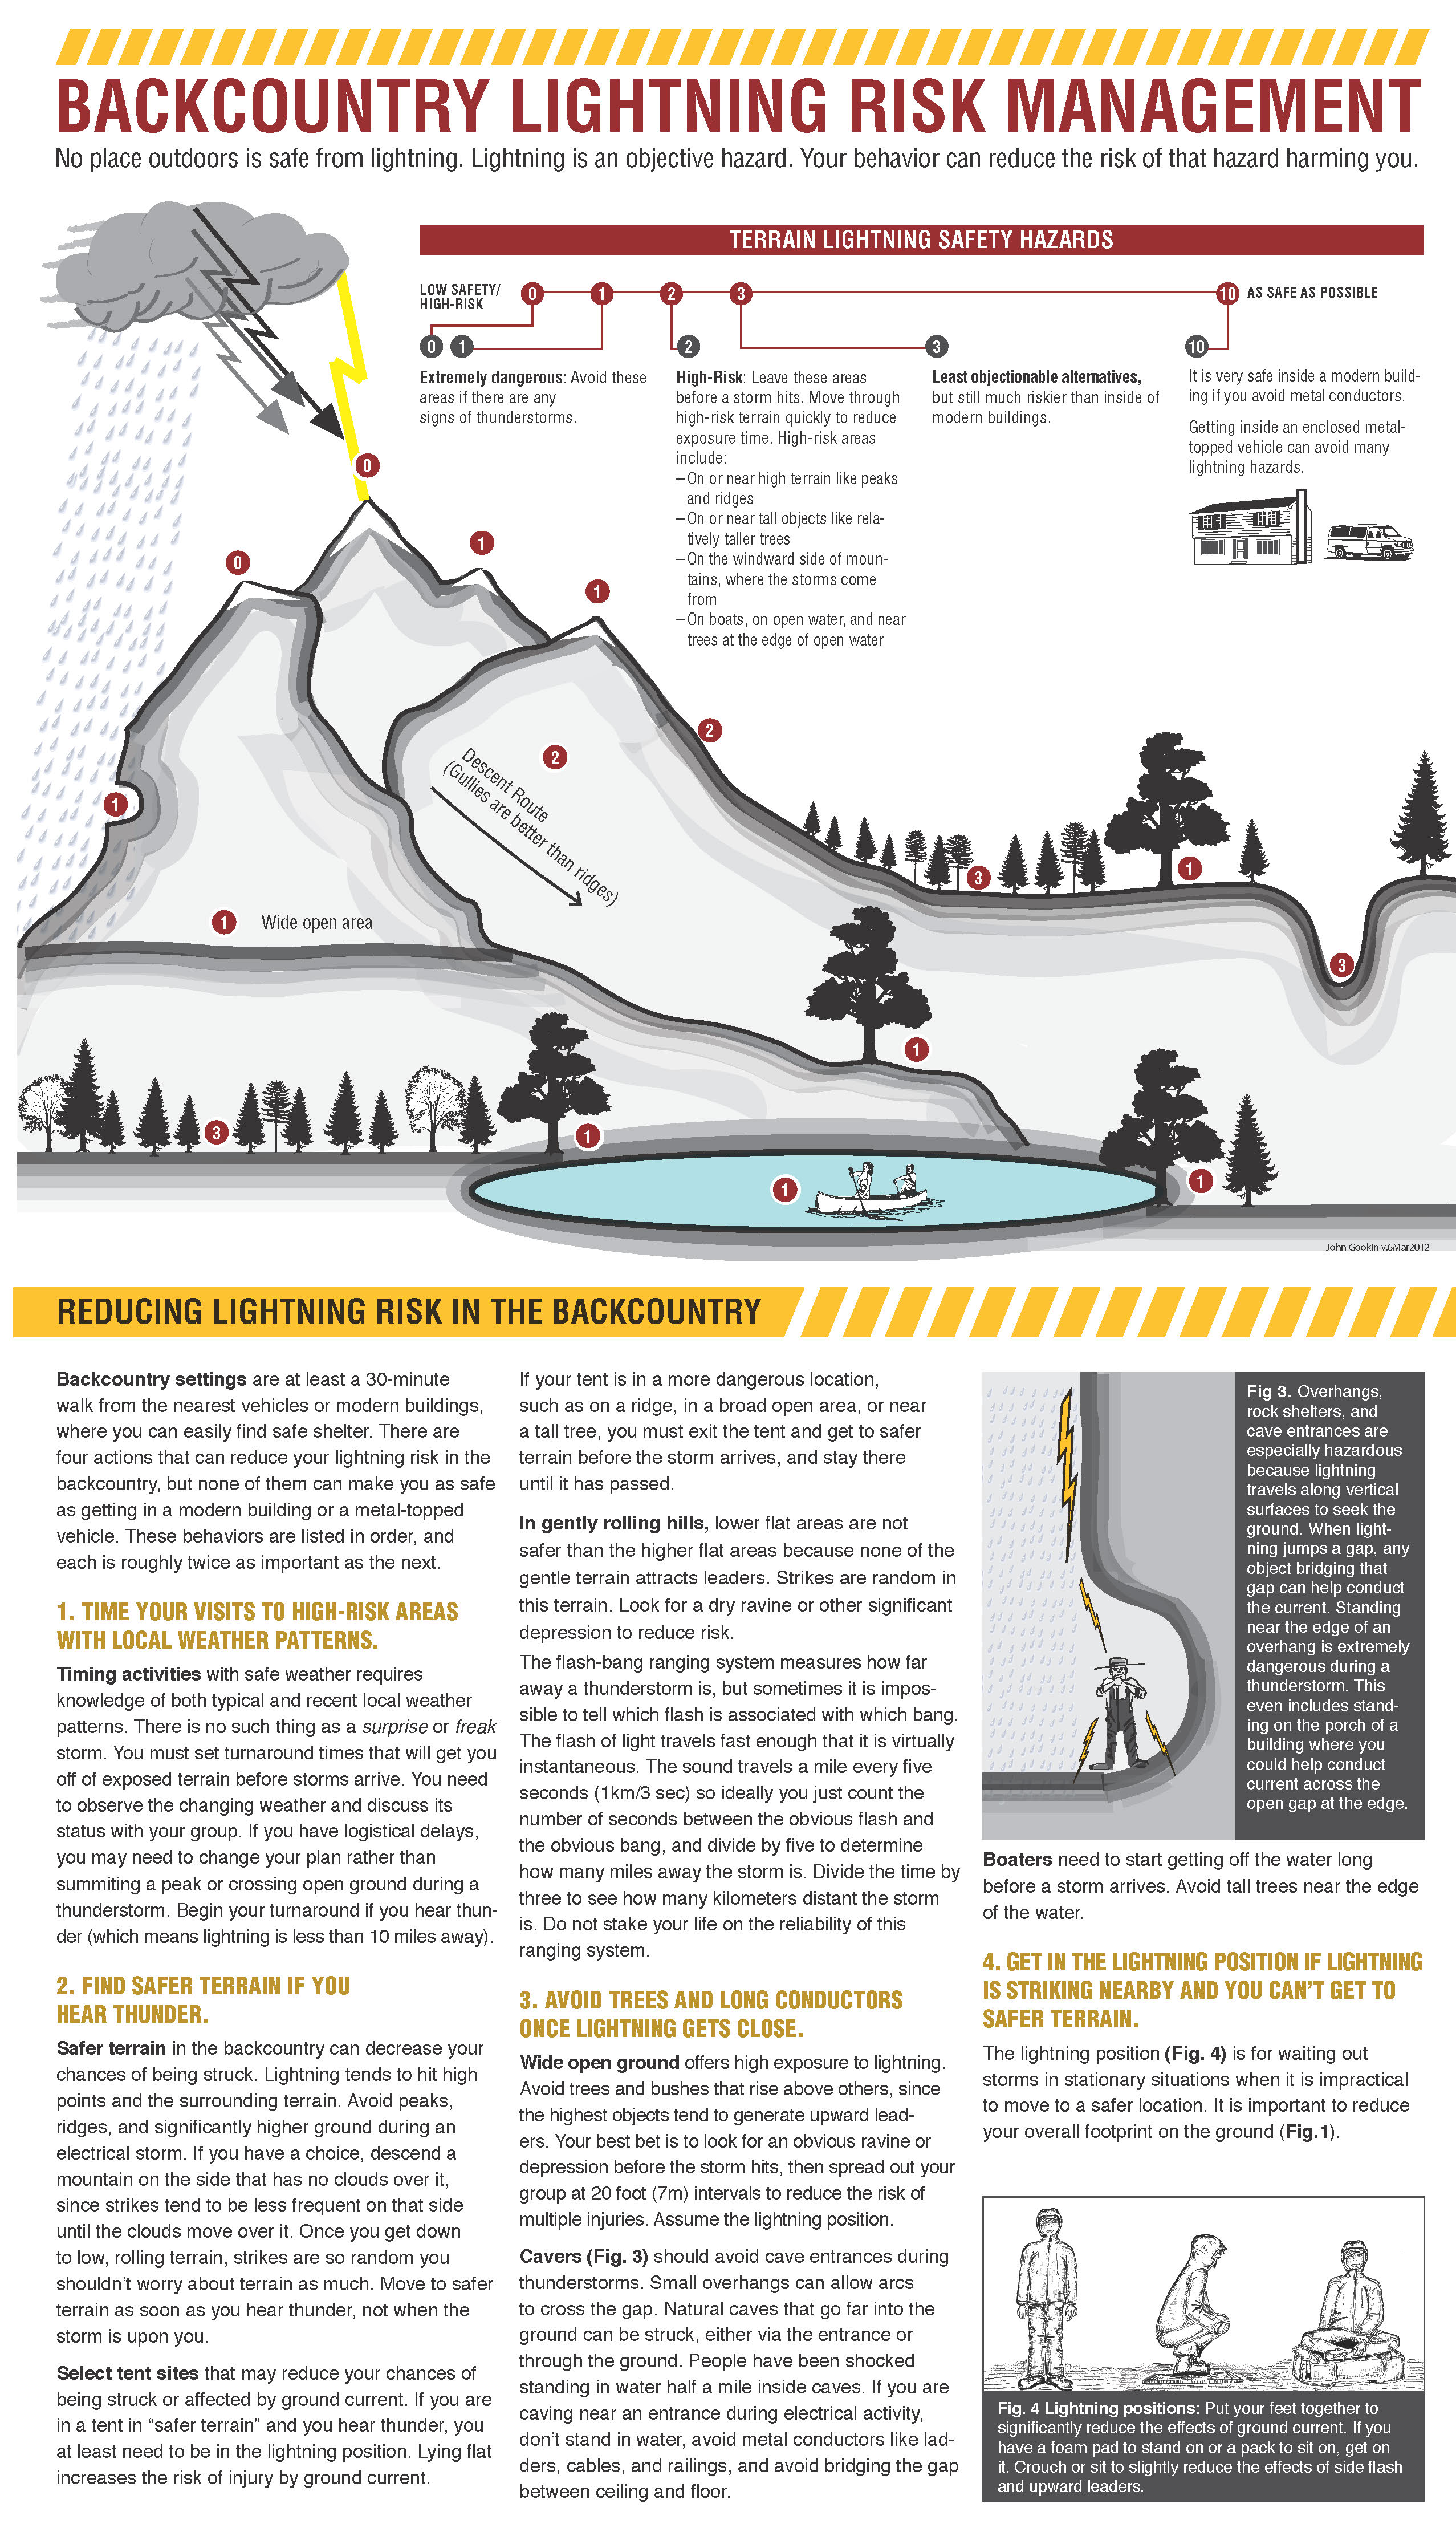 Backcountry lightning safety information courtesy of National Weather Service, St. George News